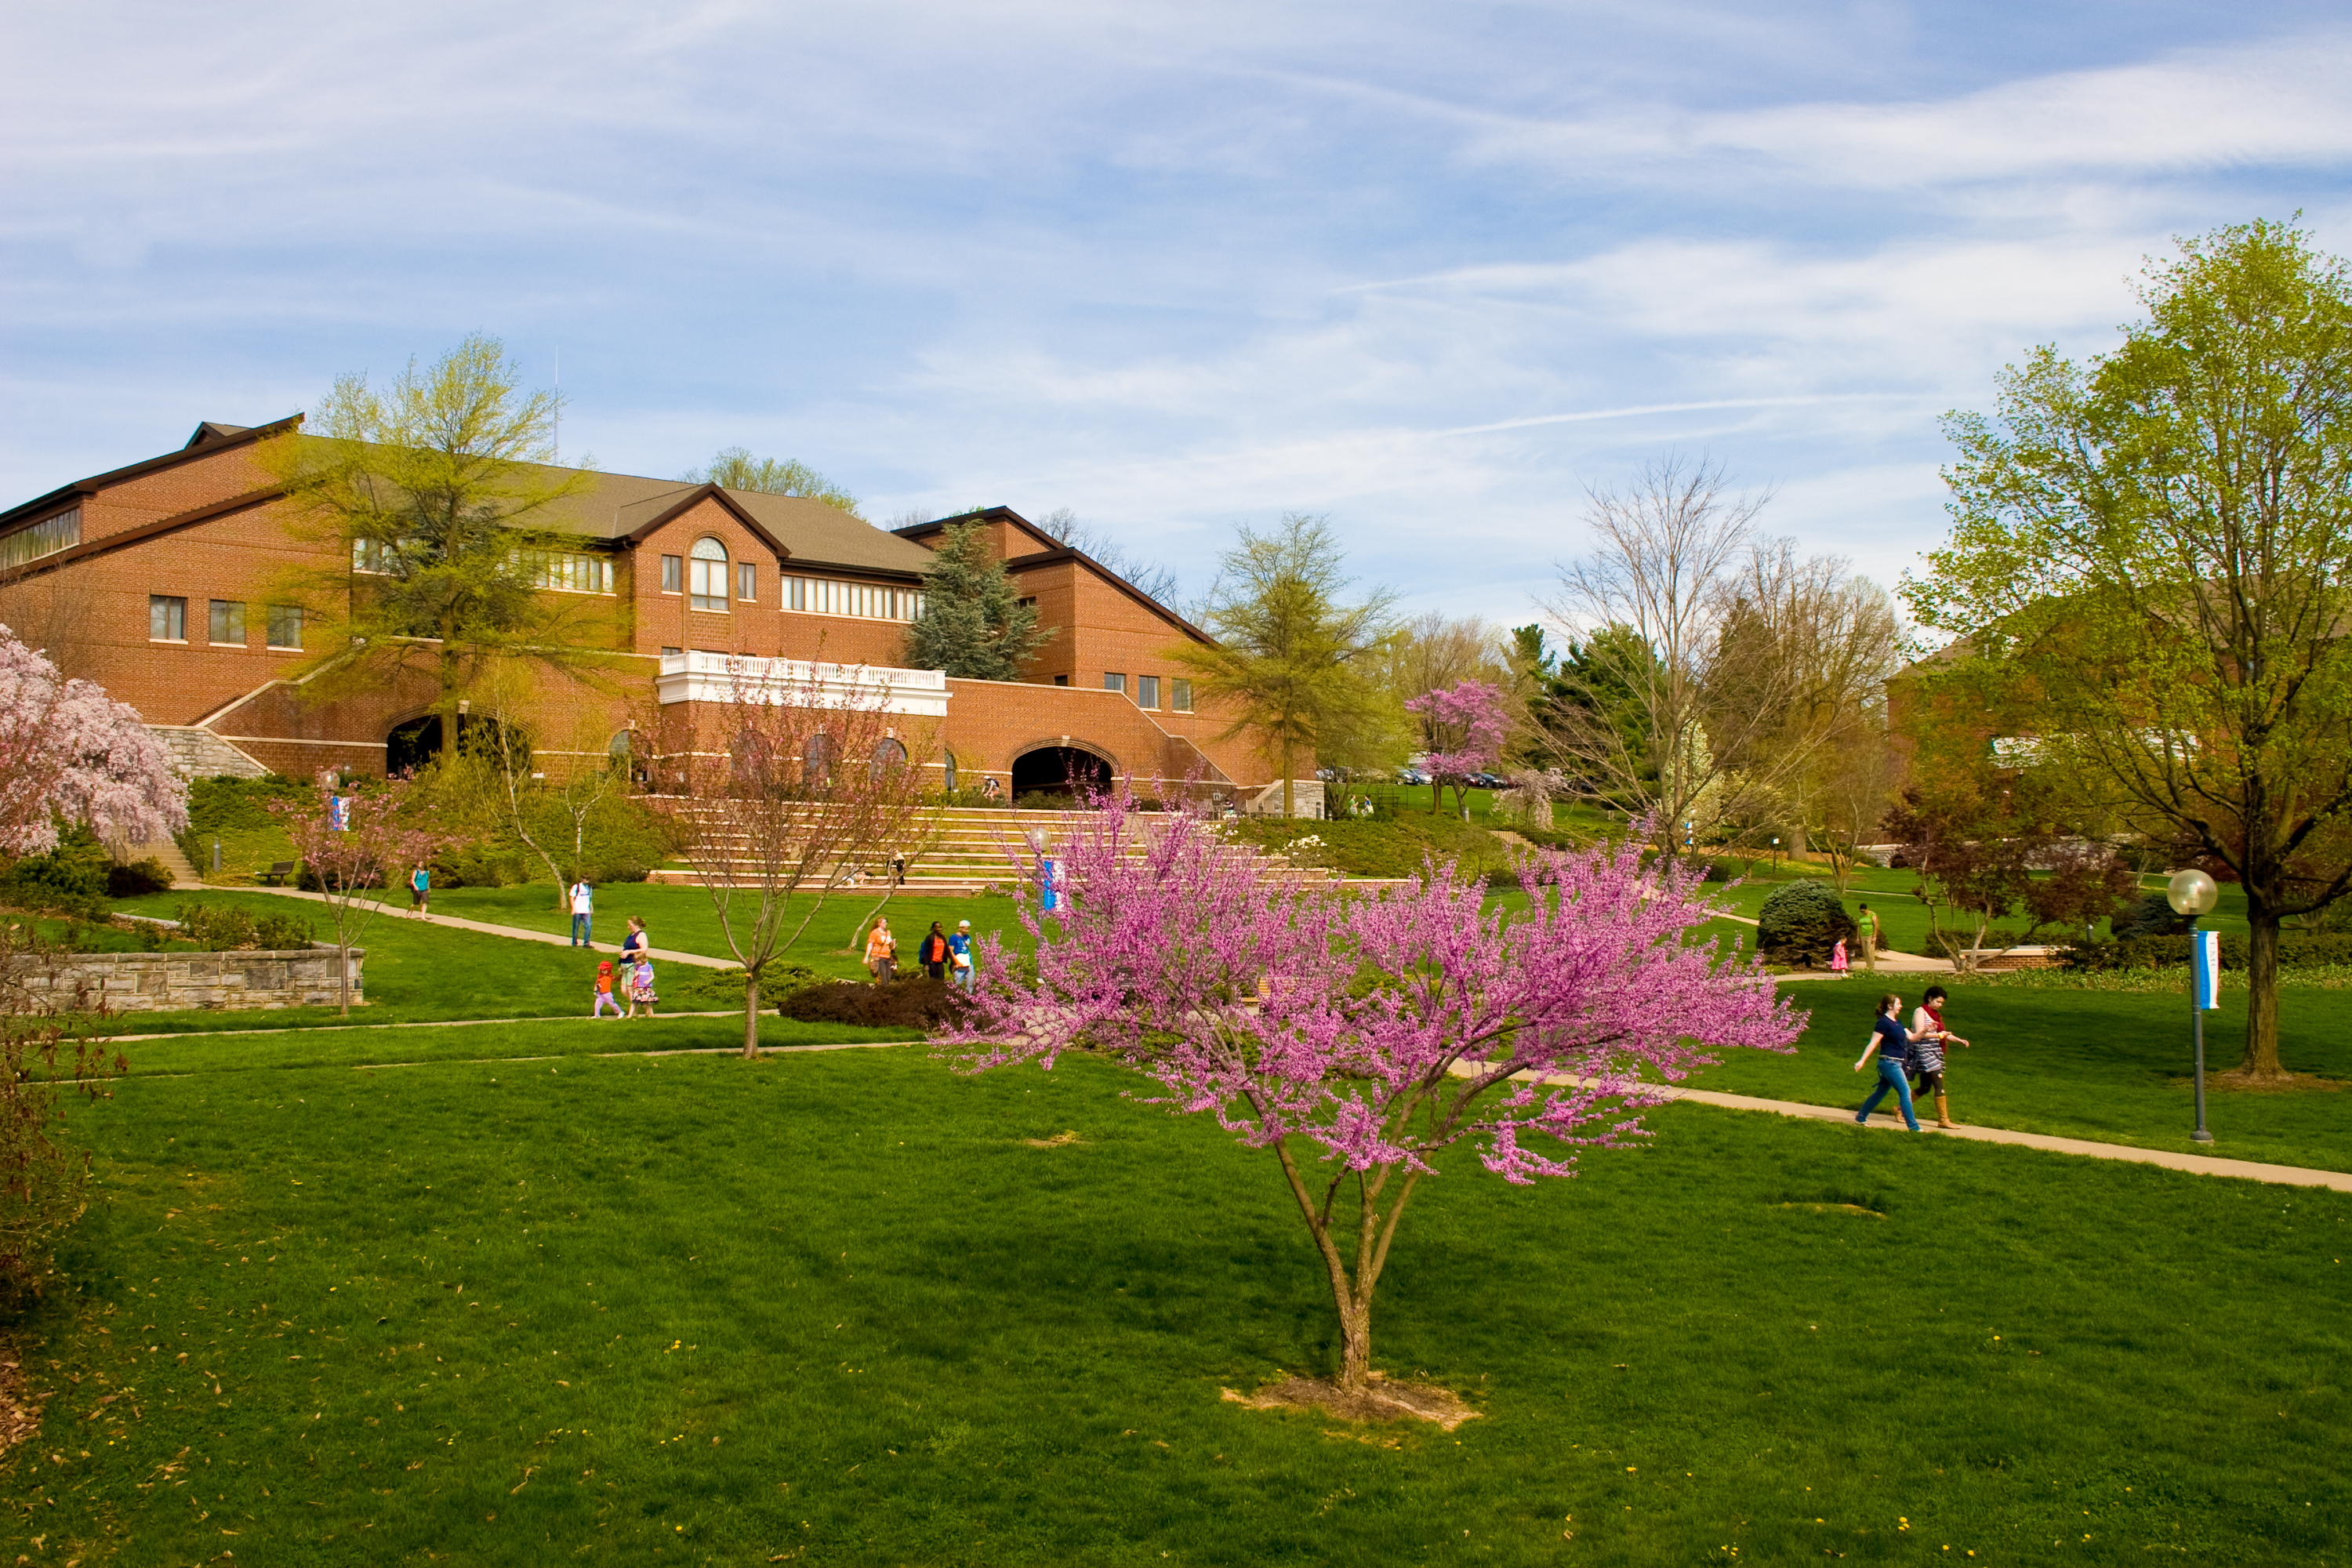 File:Eastern Mennonite University Campus Center Building.jpg